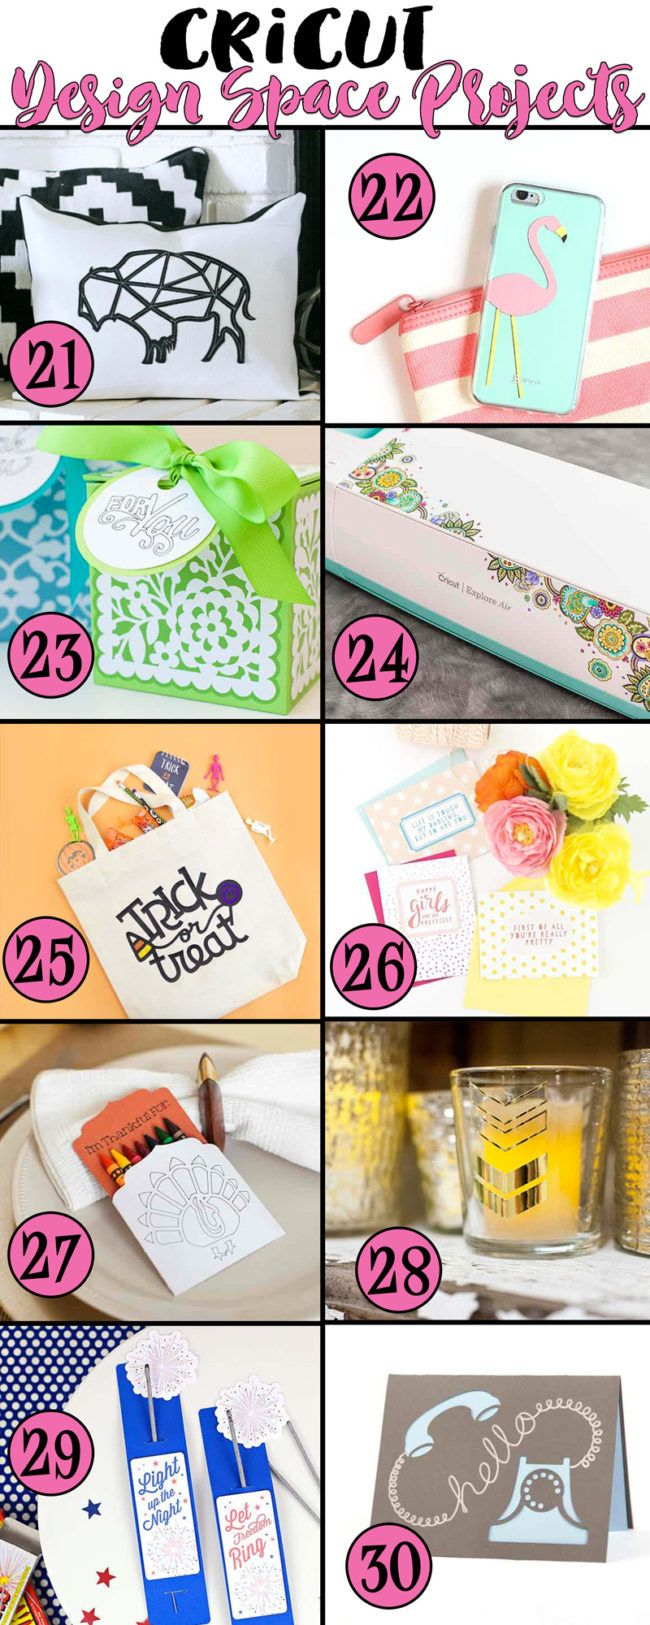 30 Cricut Project Ideas and I'm in love    With a Machine